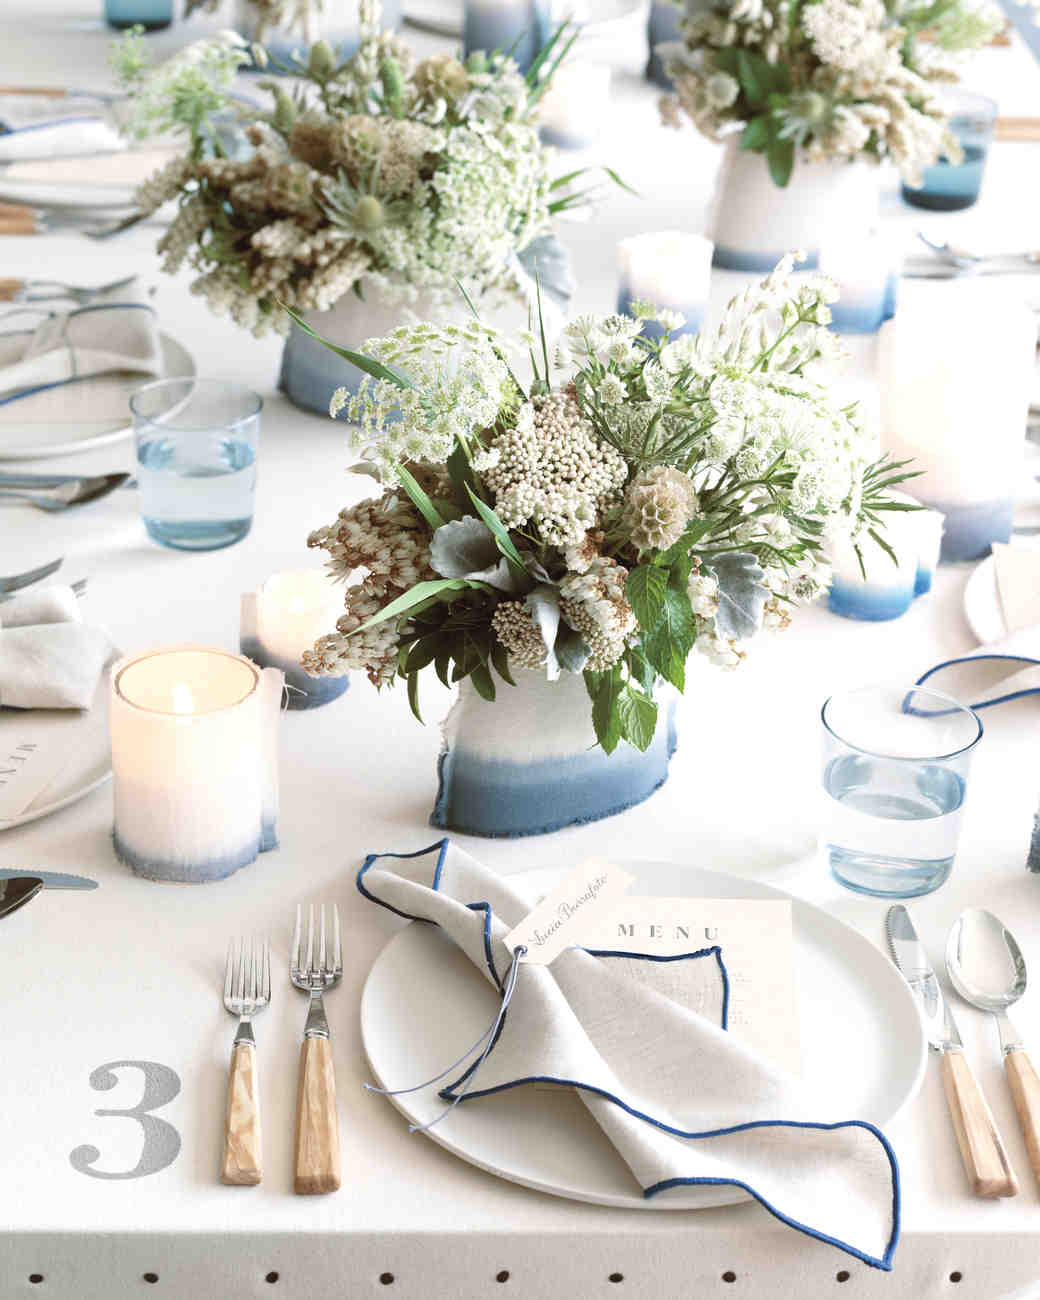 table-setting-0131-d111114.jpg